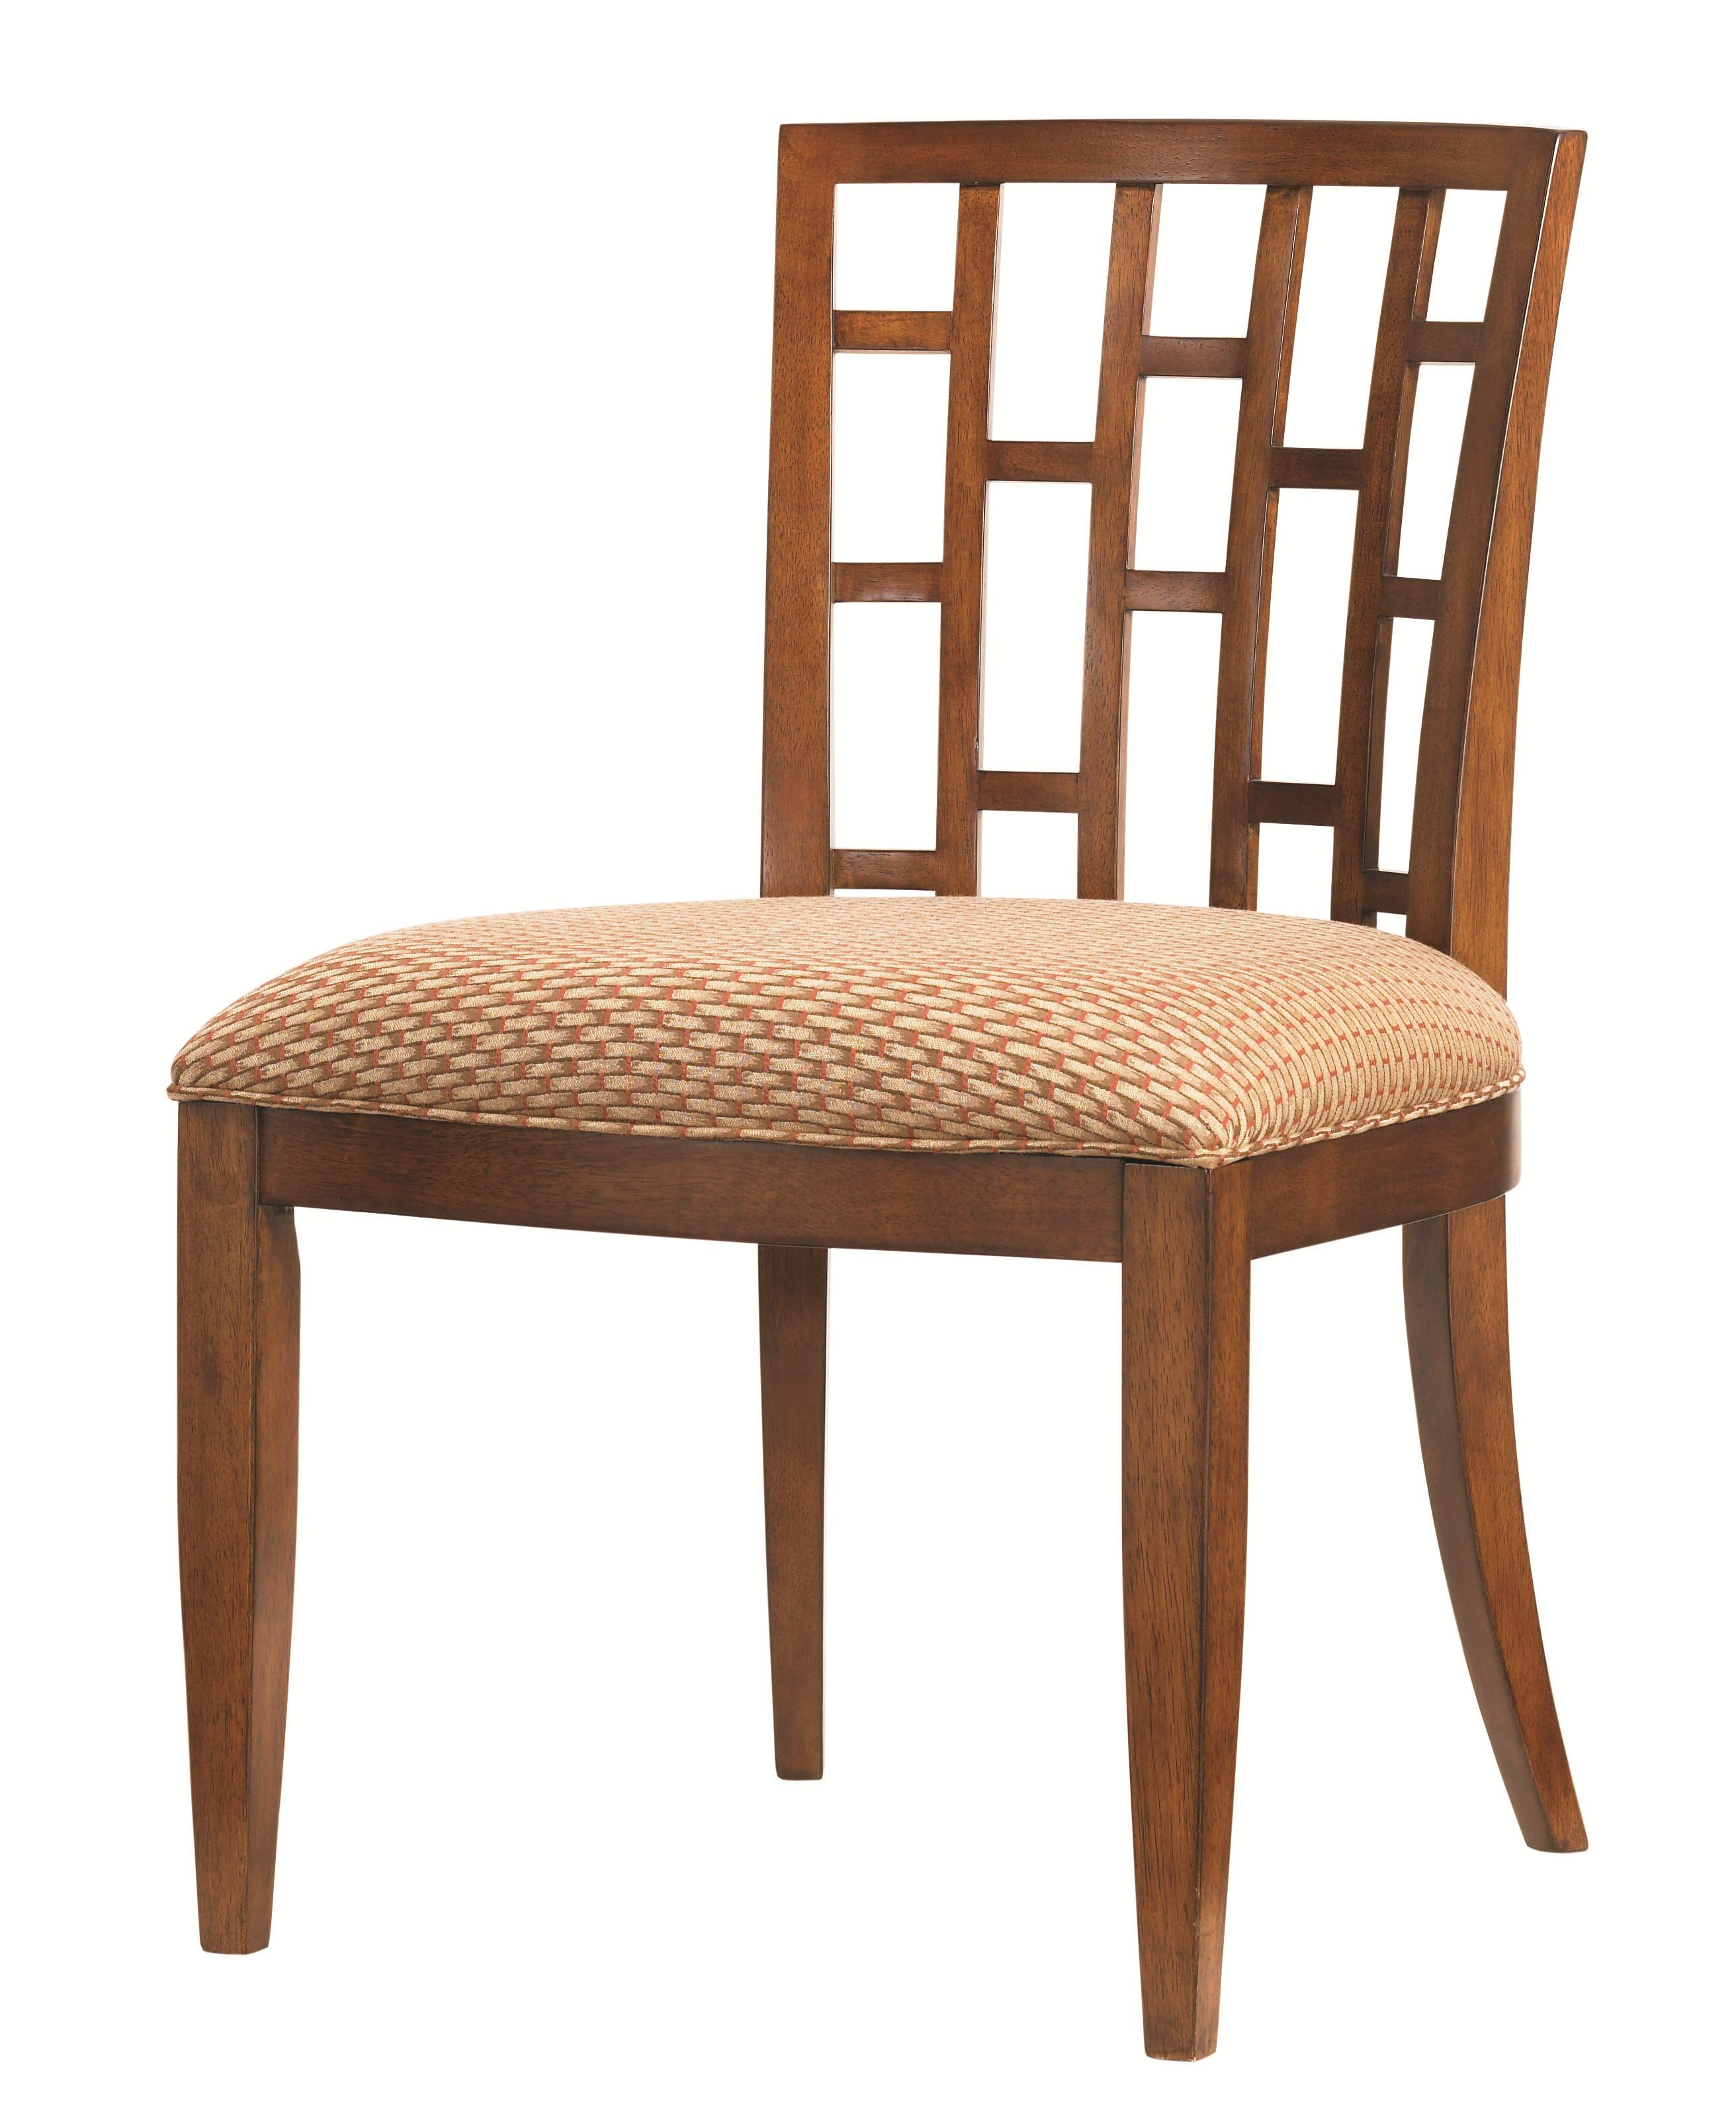 Ocean Club <b>Quick Ship</b> Lanai Side Chair by Tommy Bahama Home at Baer's Furniture